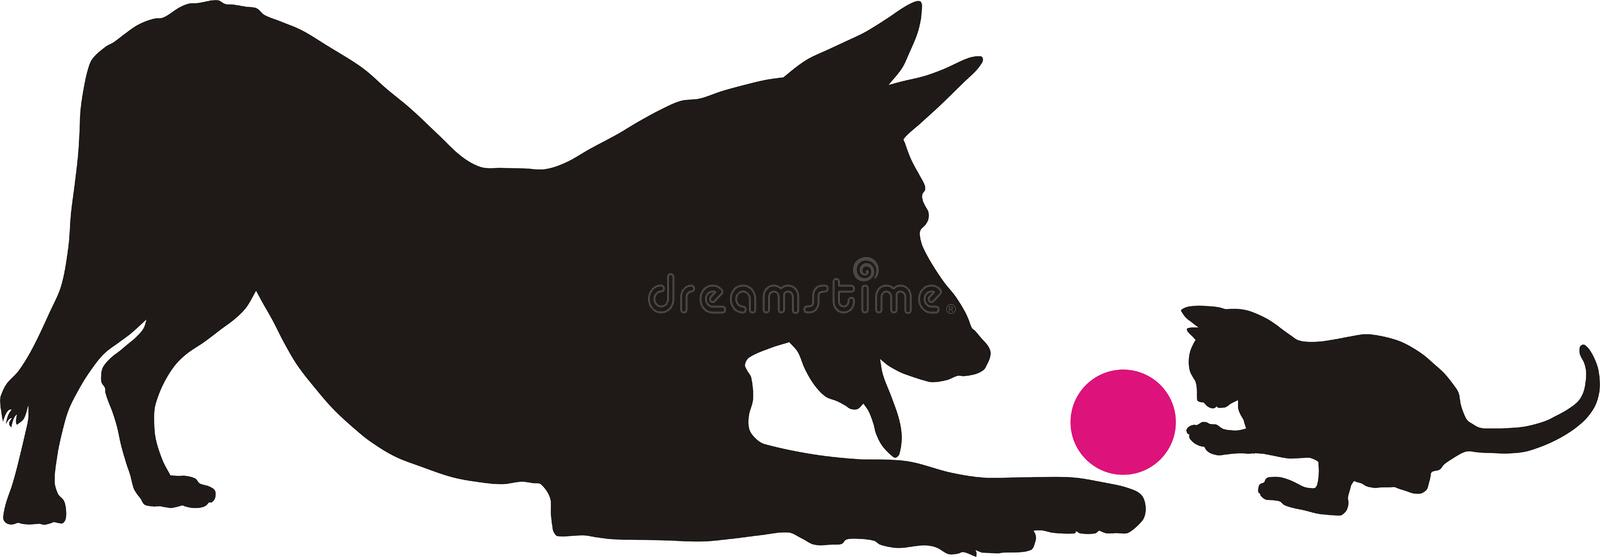 Kitten And Dog Stock Images